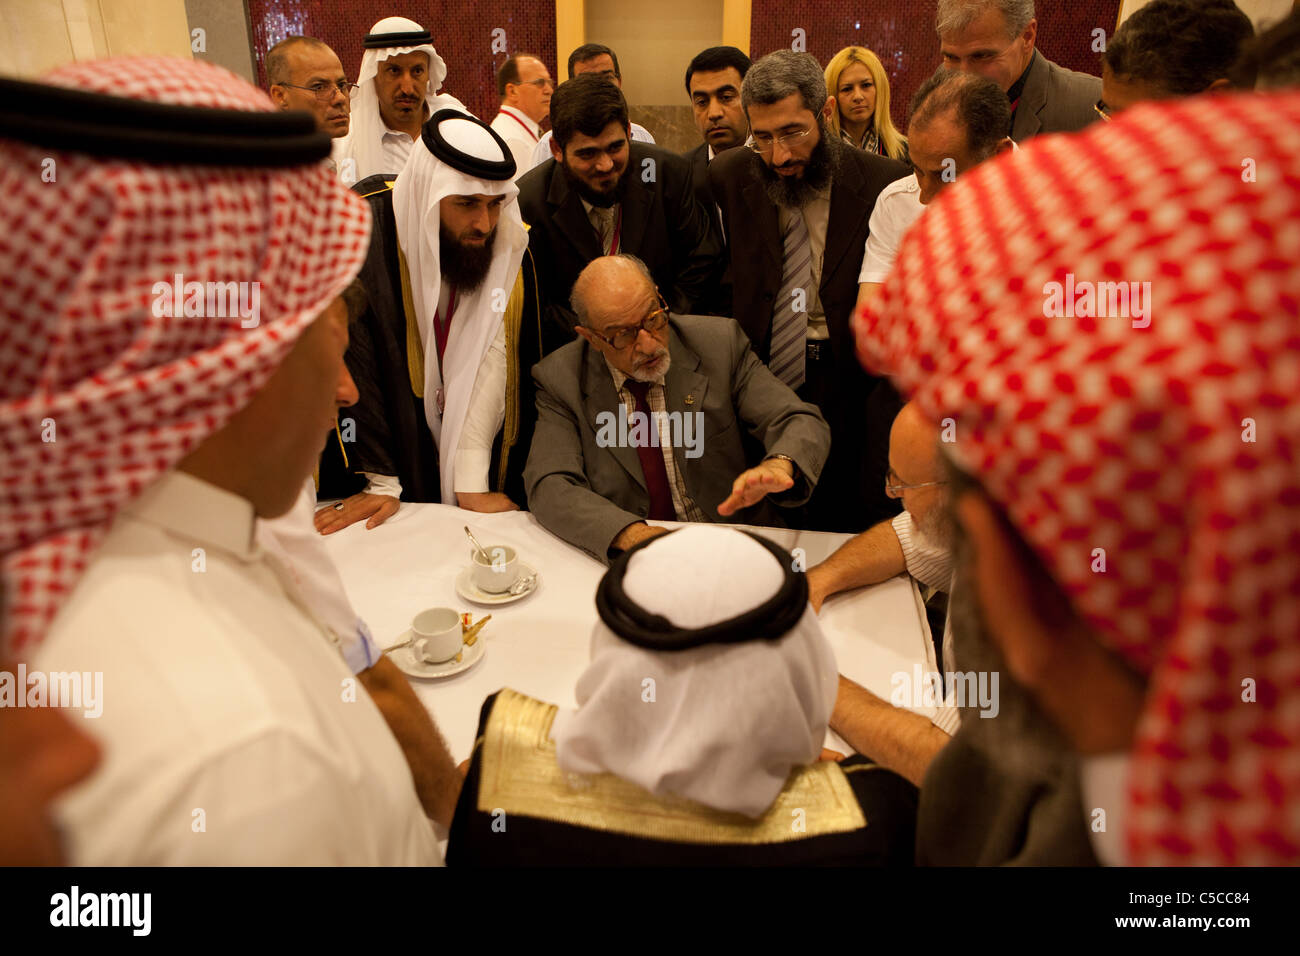 Mr. Haitham Al Maleh; 'Nelson Mandella of Syria' discusses with opposition members formation of a Transitional - Stock Image